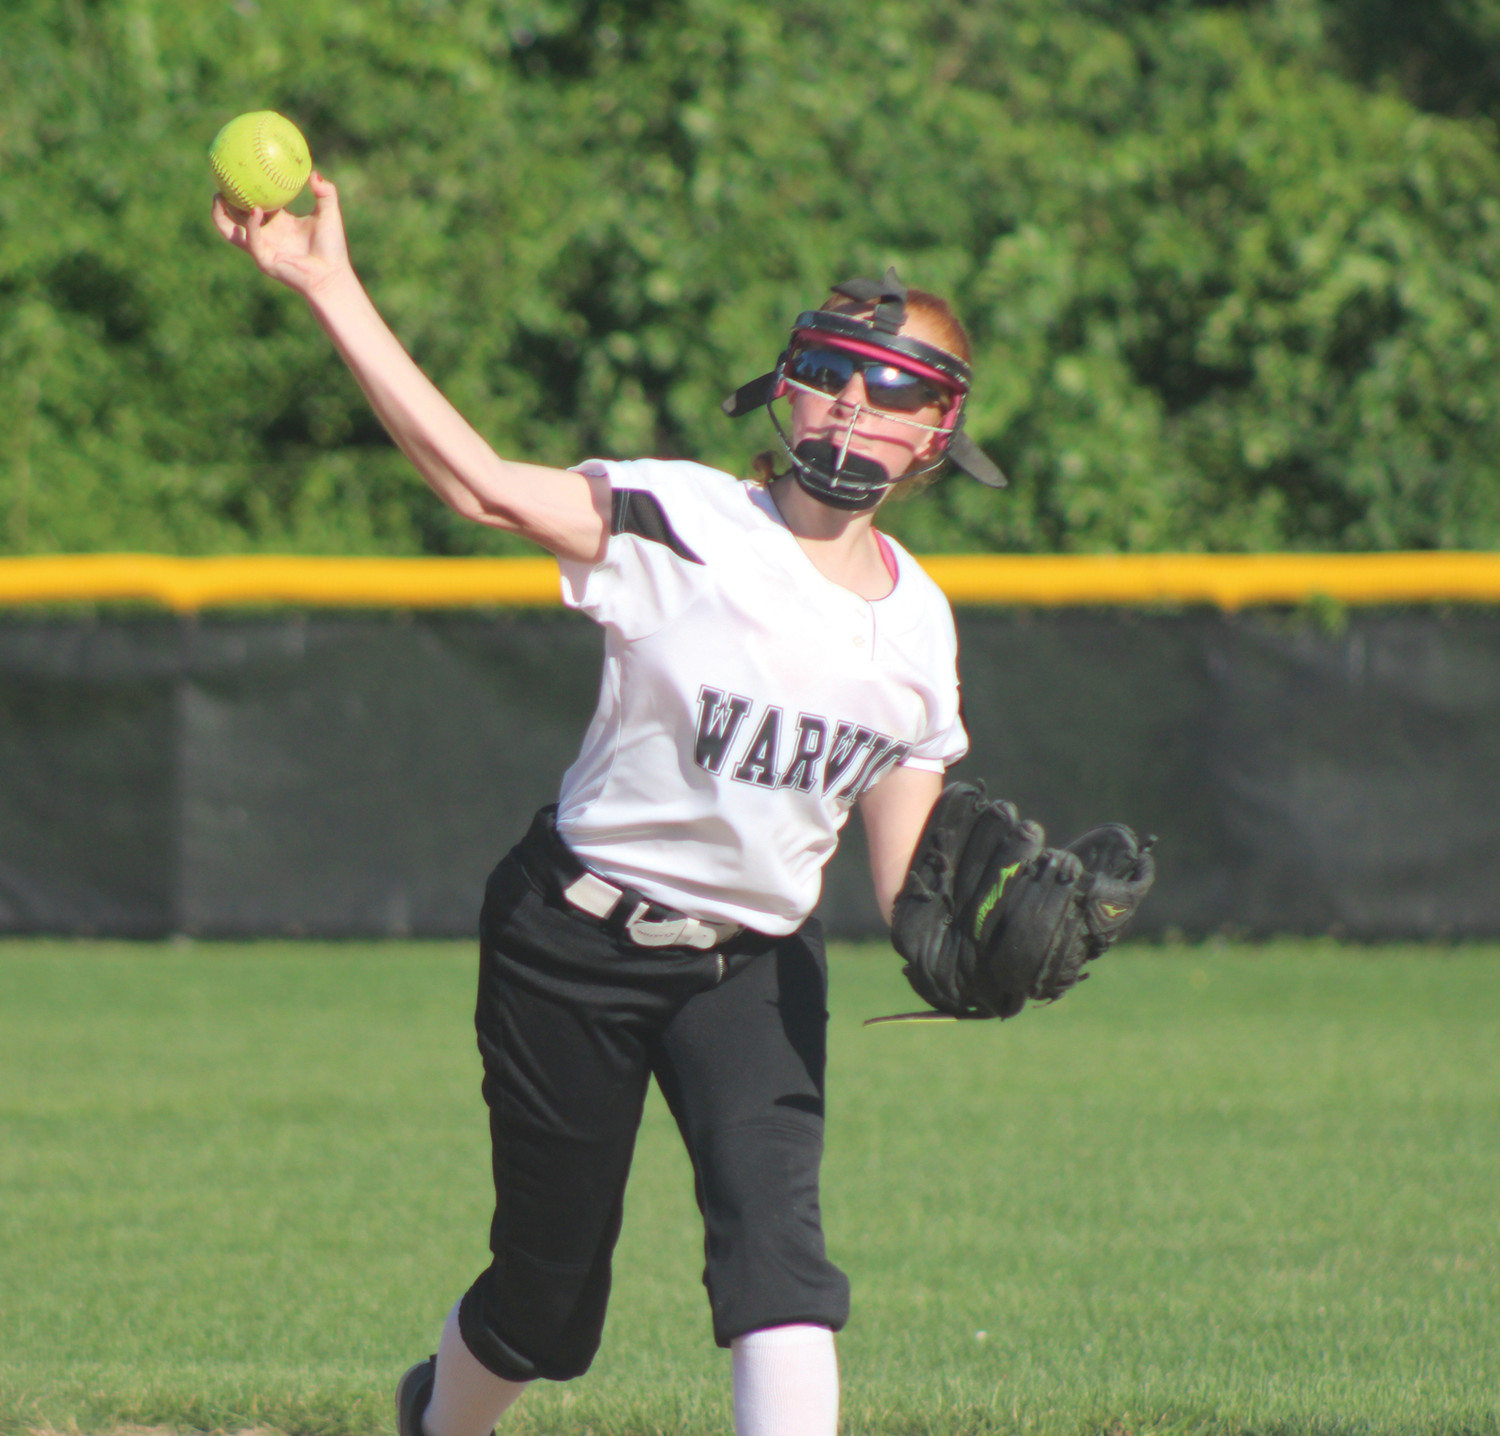 CHAMPIONSHIP   SOFTBALL: Warwick North's Emma Burr fires to first base against Coventry in the District 3 championship on Friday.